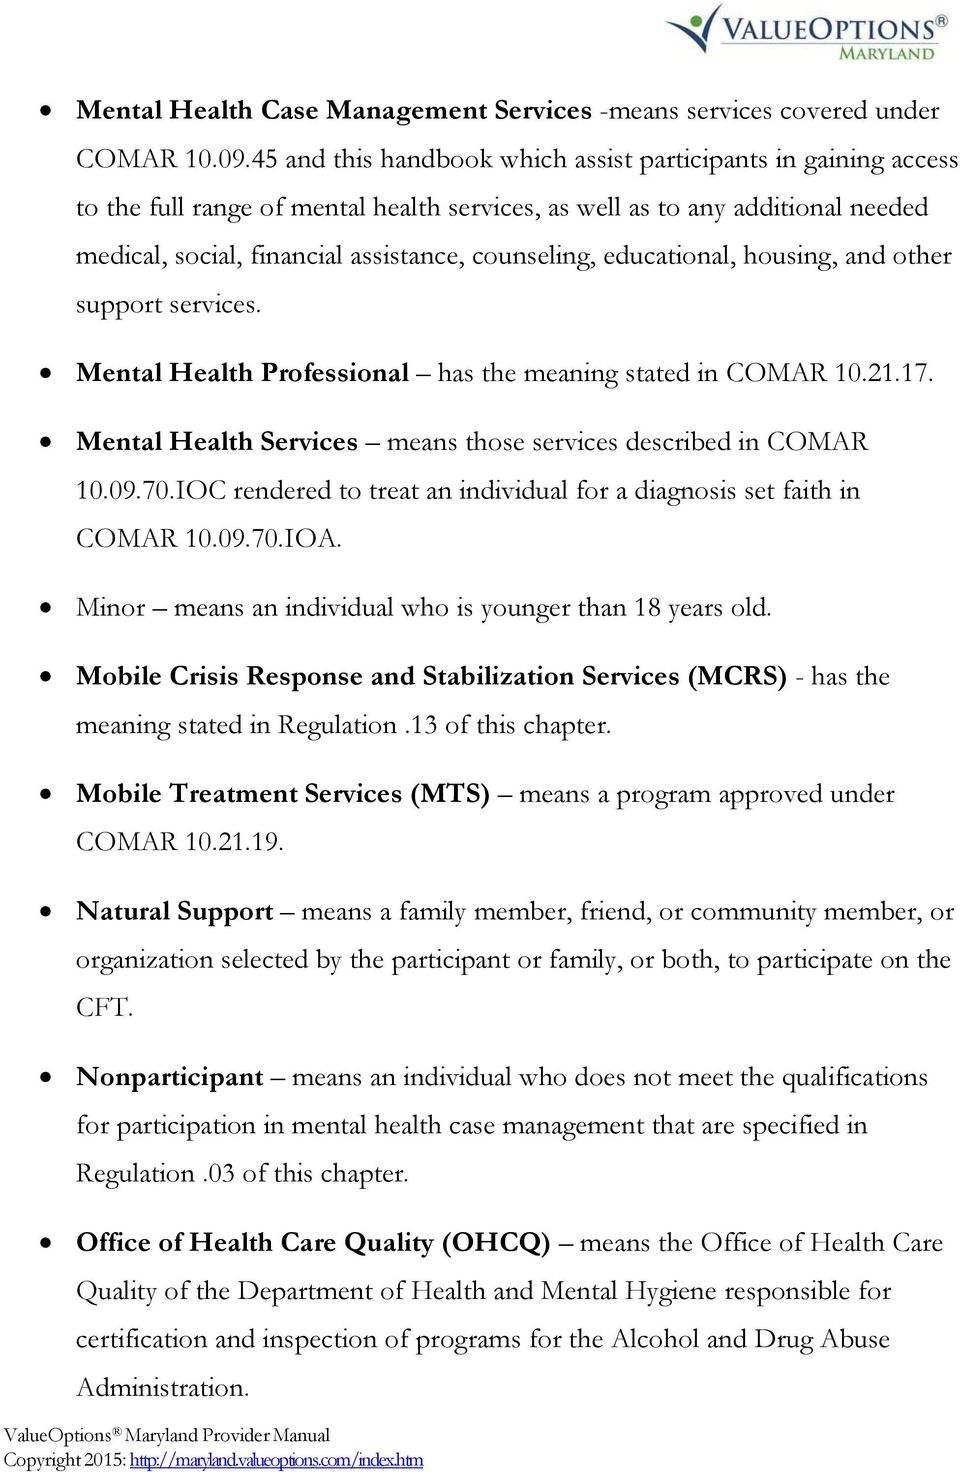 educational, housing, and other support services. Mental Health Professional has the meaning stated in COMAR 10.21.17. Mental Health Services means those services described in COMAR 10.09.70.